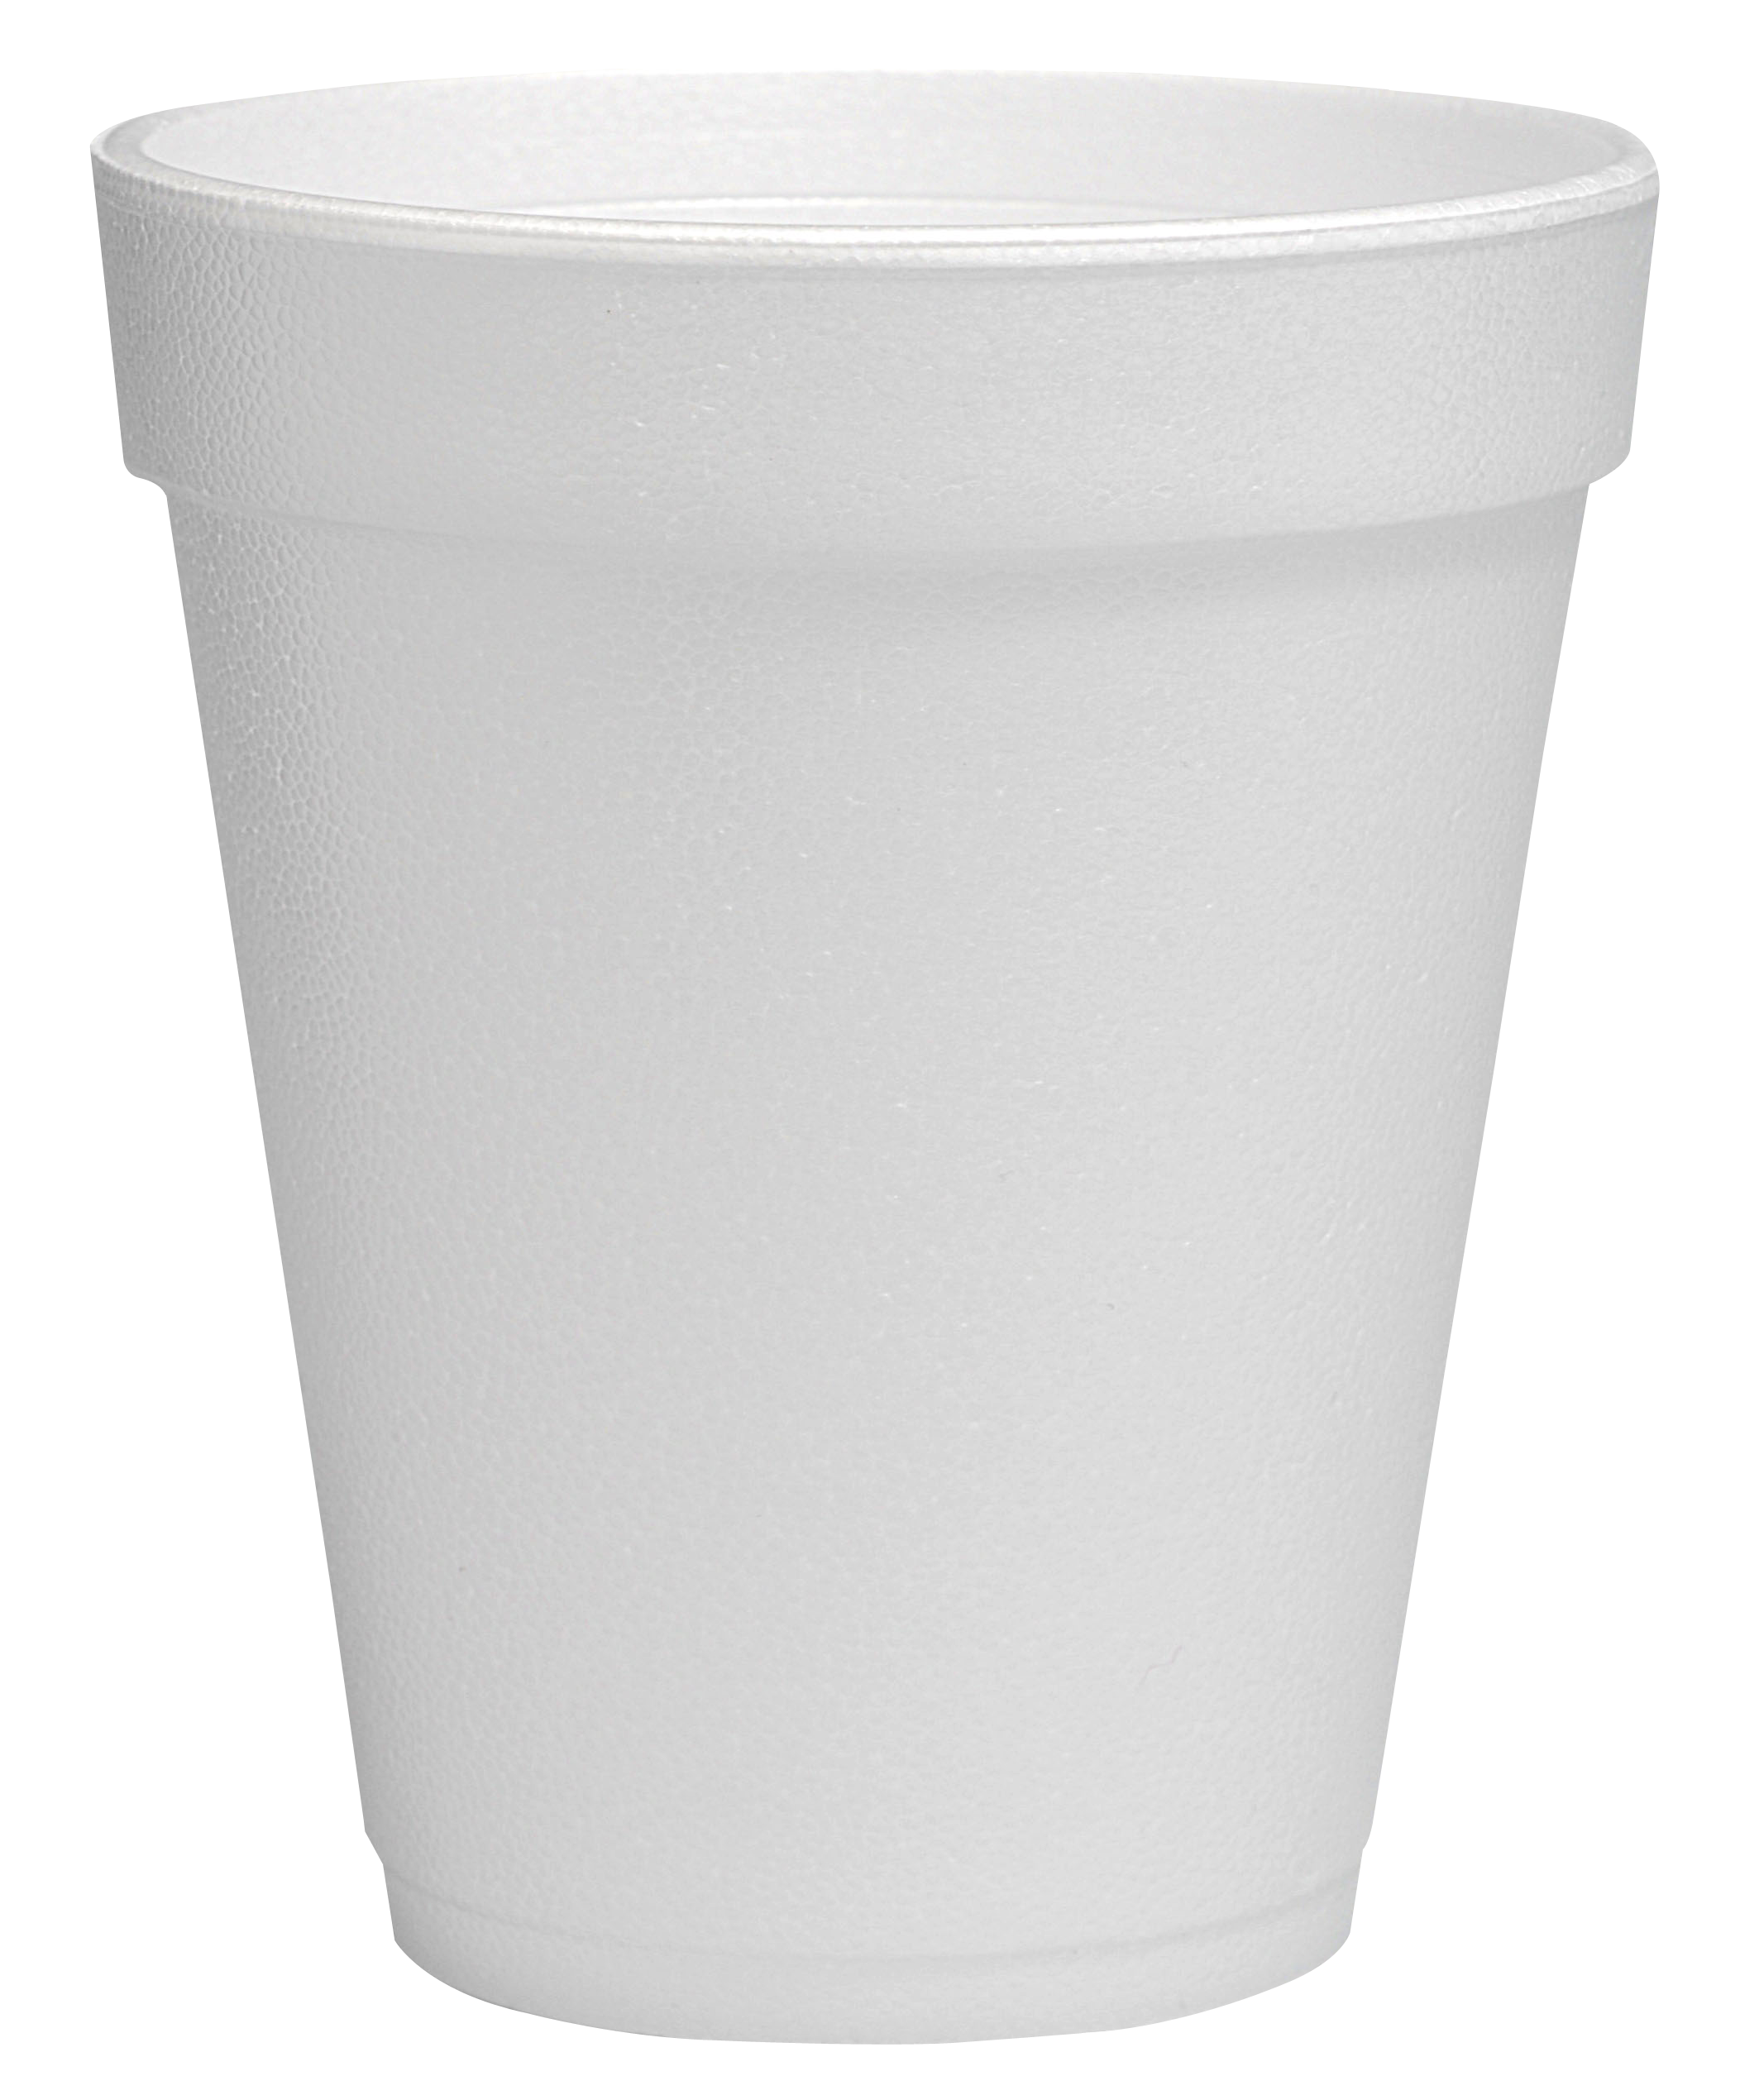 image stock Plastic cup clipart black and white. Png image purepng free